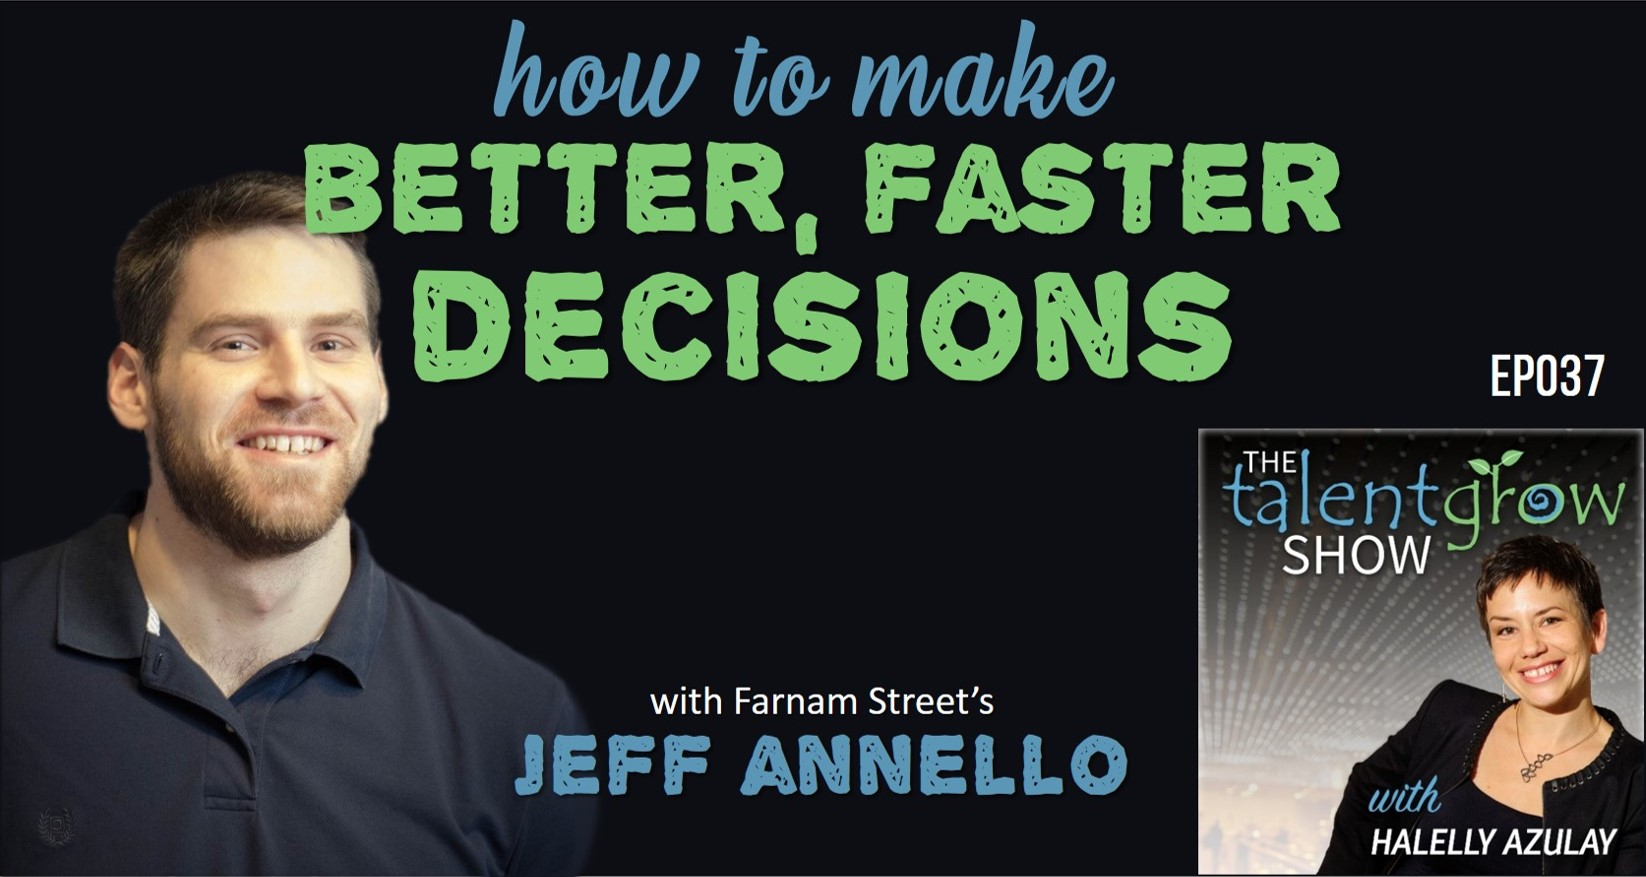 How to make better faster decisions with Jeff Annello on The TalentGrow Show podcast with host Halelly Azulay